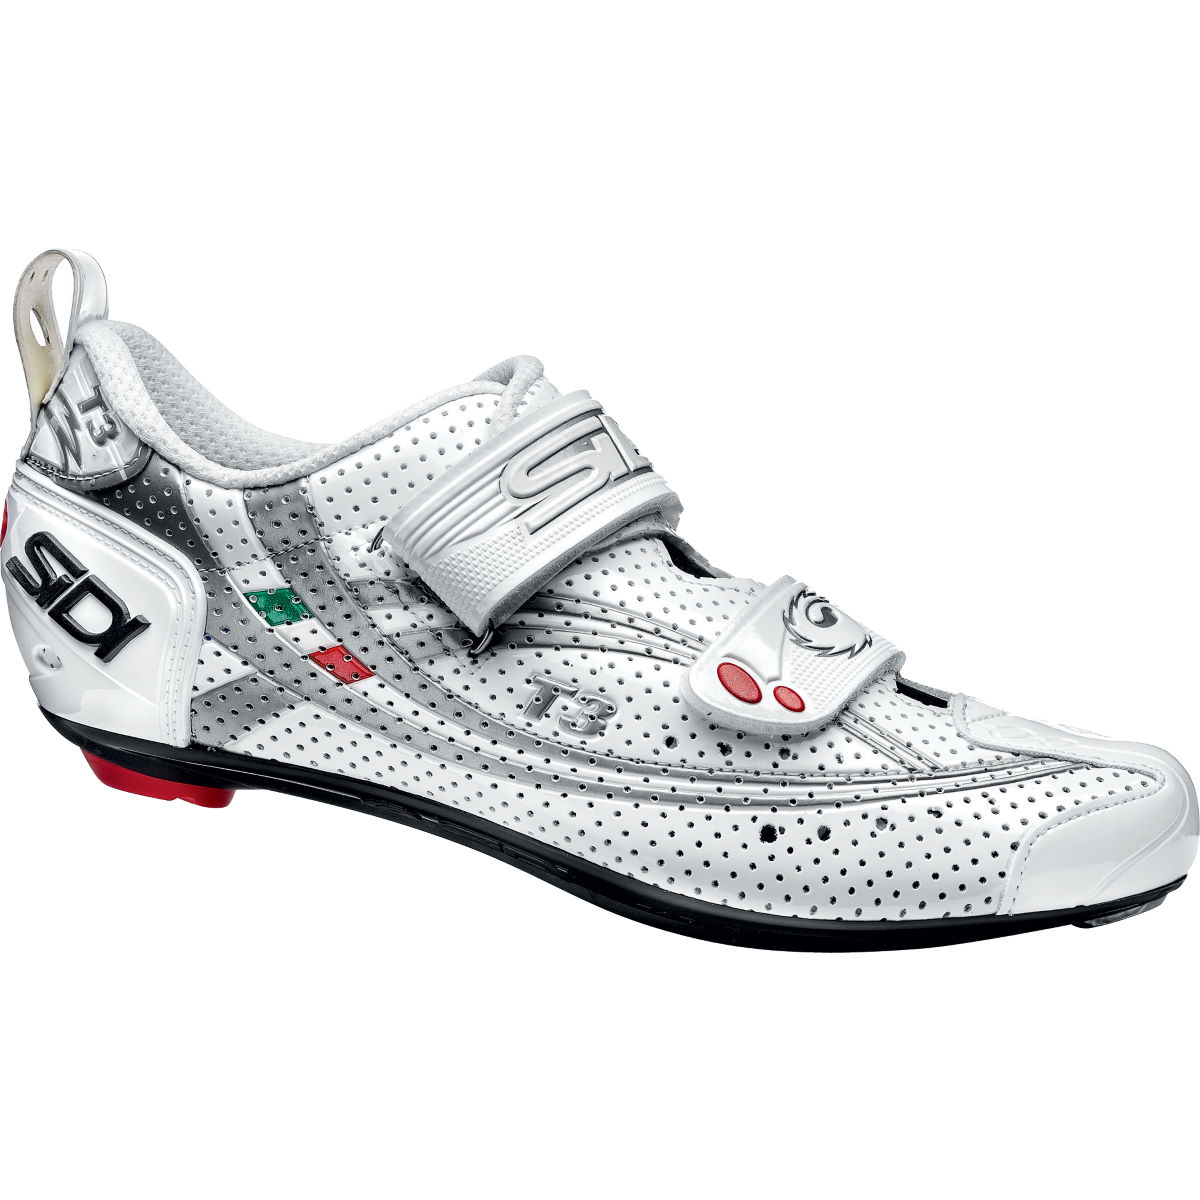 Sidi T-3 Air Carbon Composite Tri Shoe